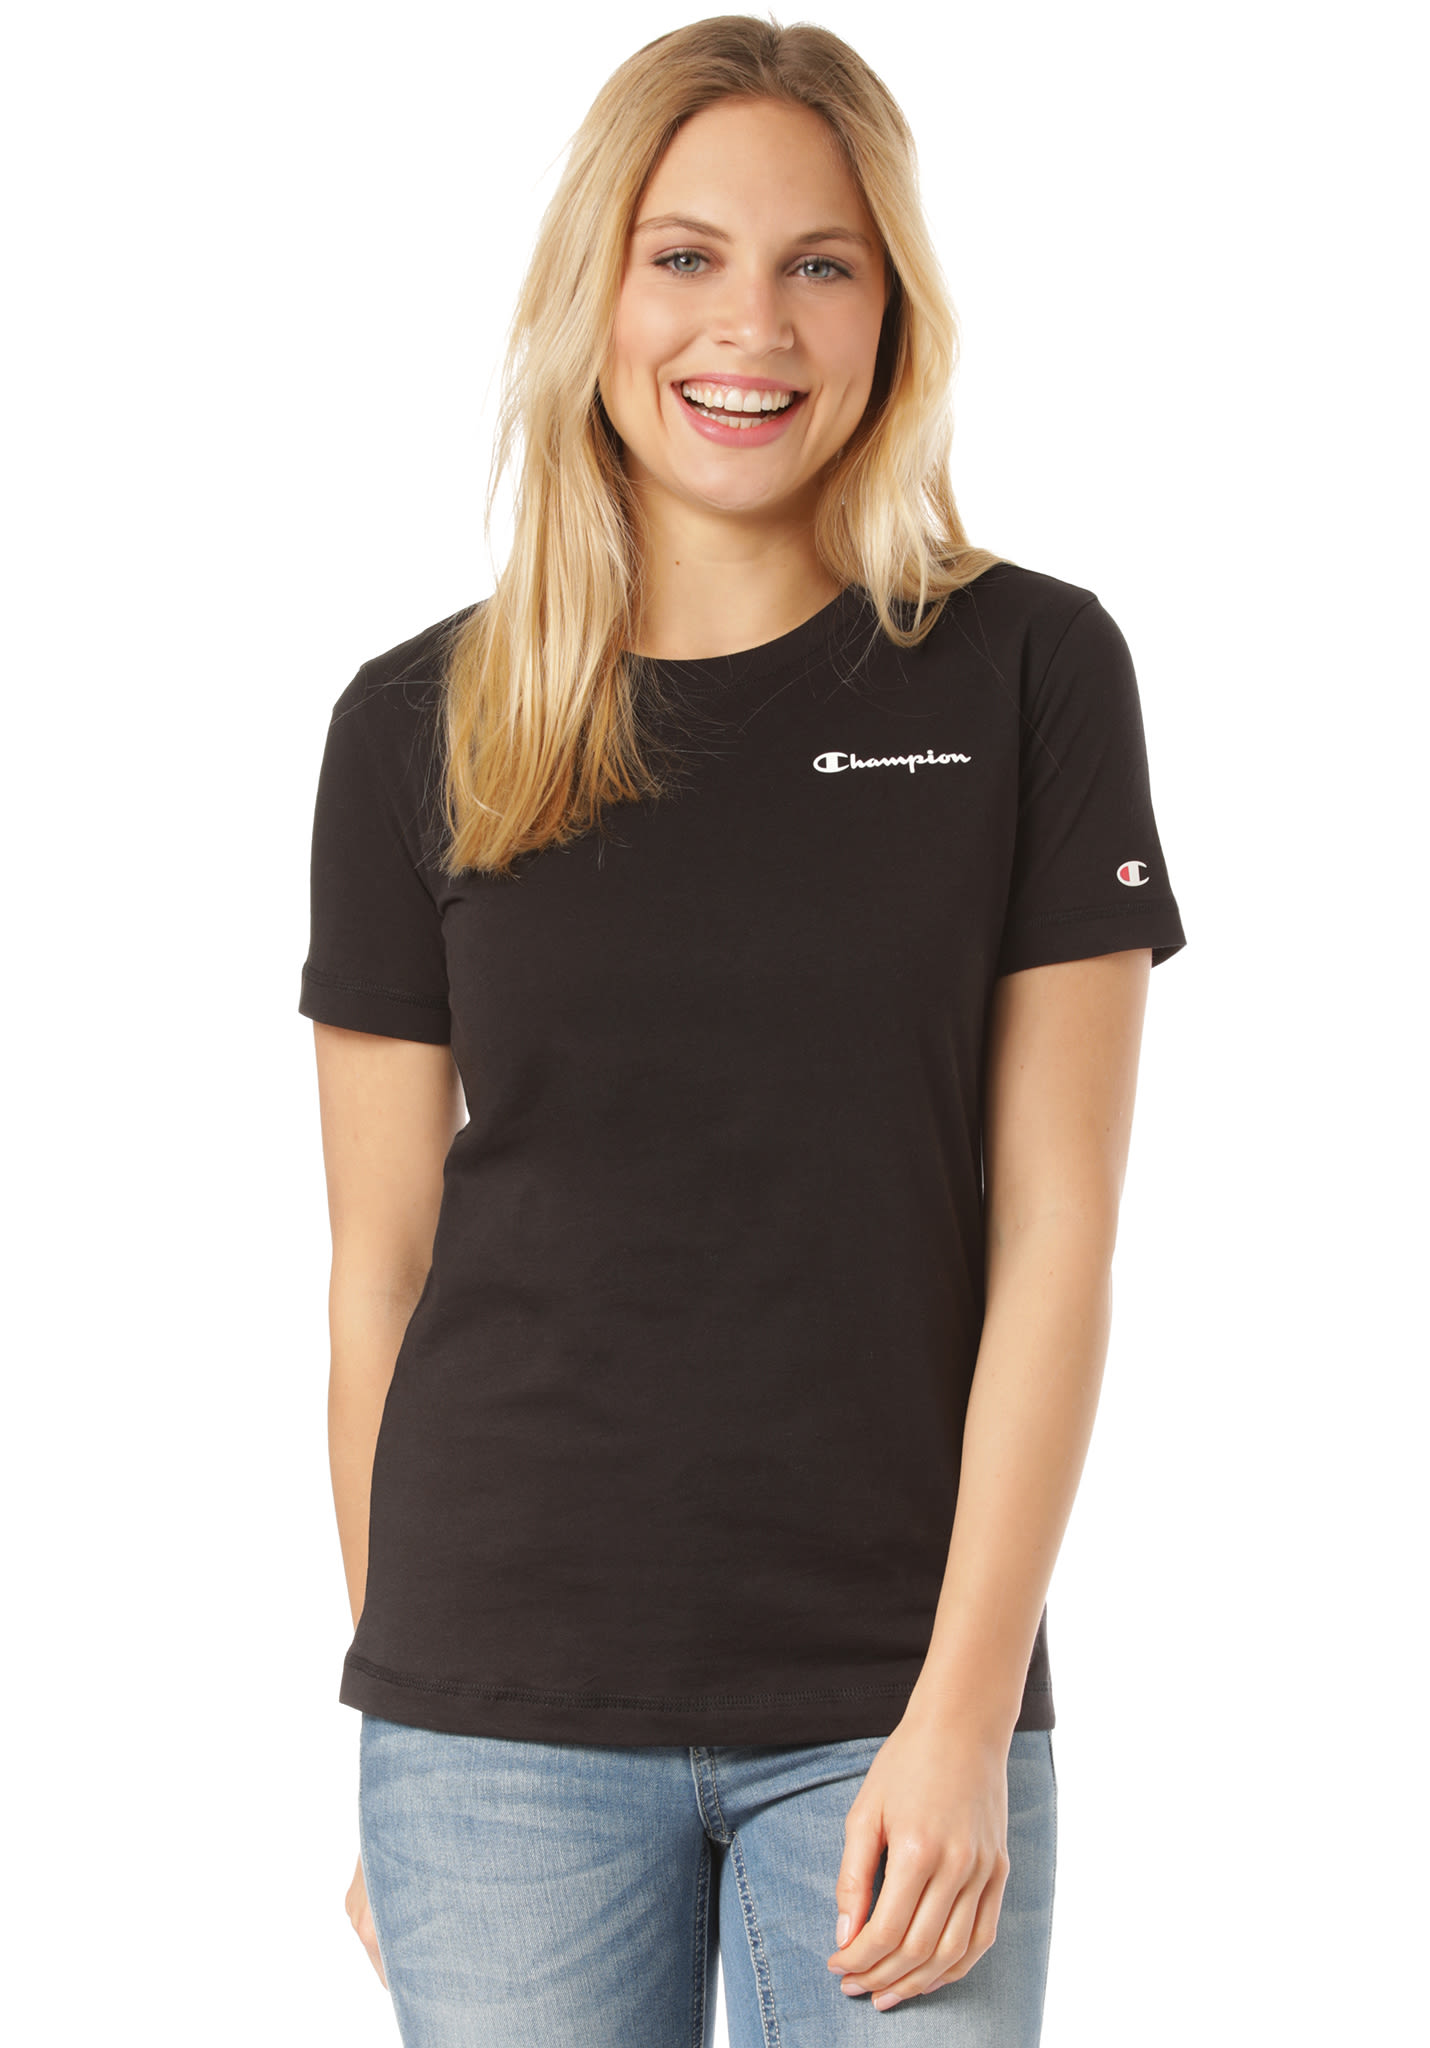 d99323156f81 Champion Crewneck - T-Shirt for Women - Black - Planet Sports